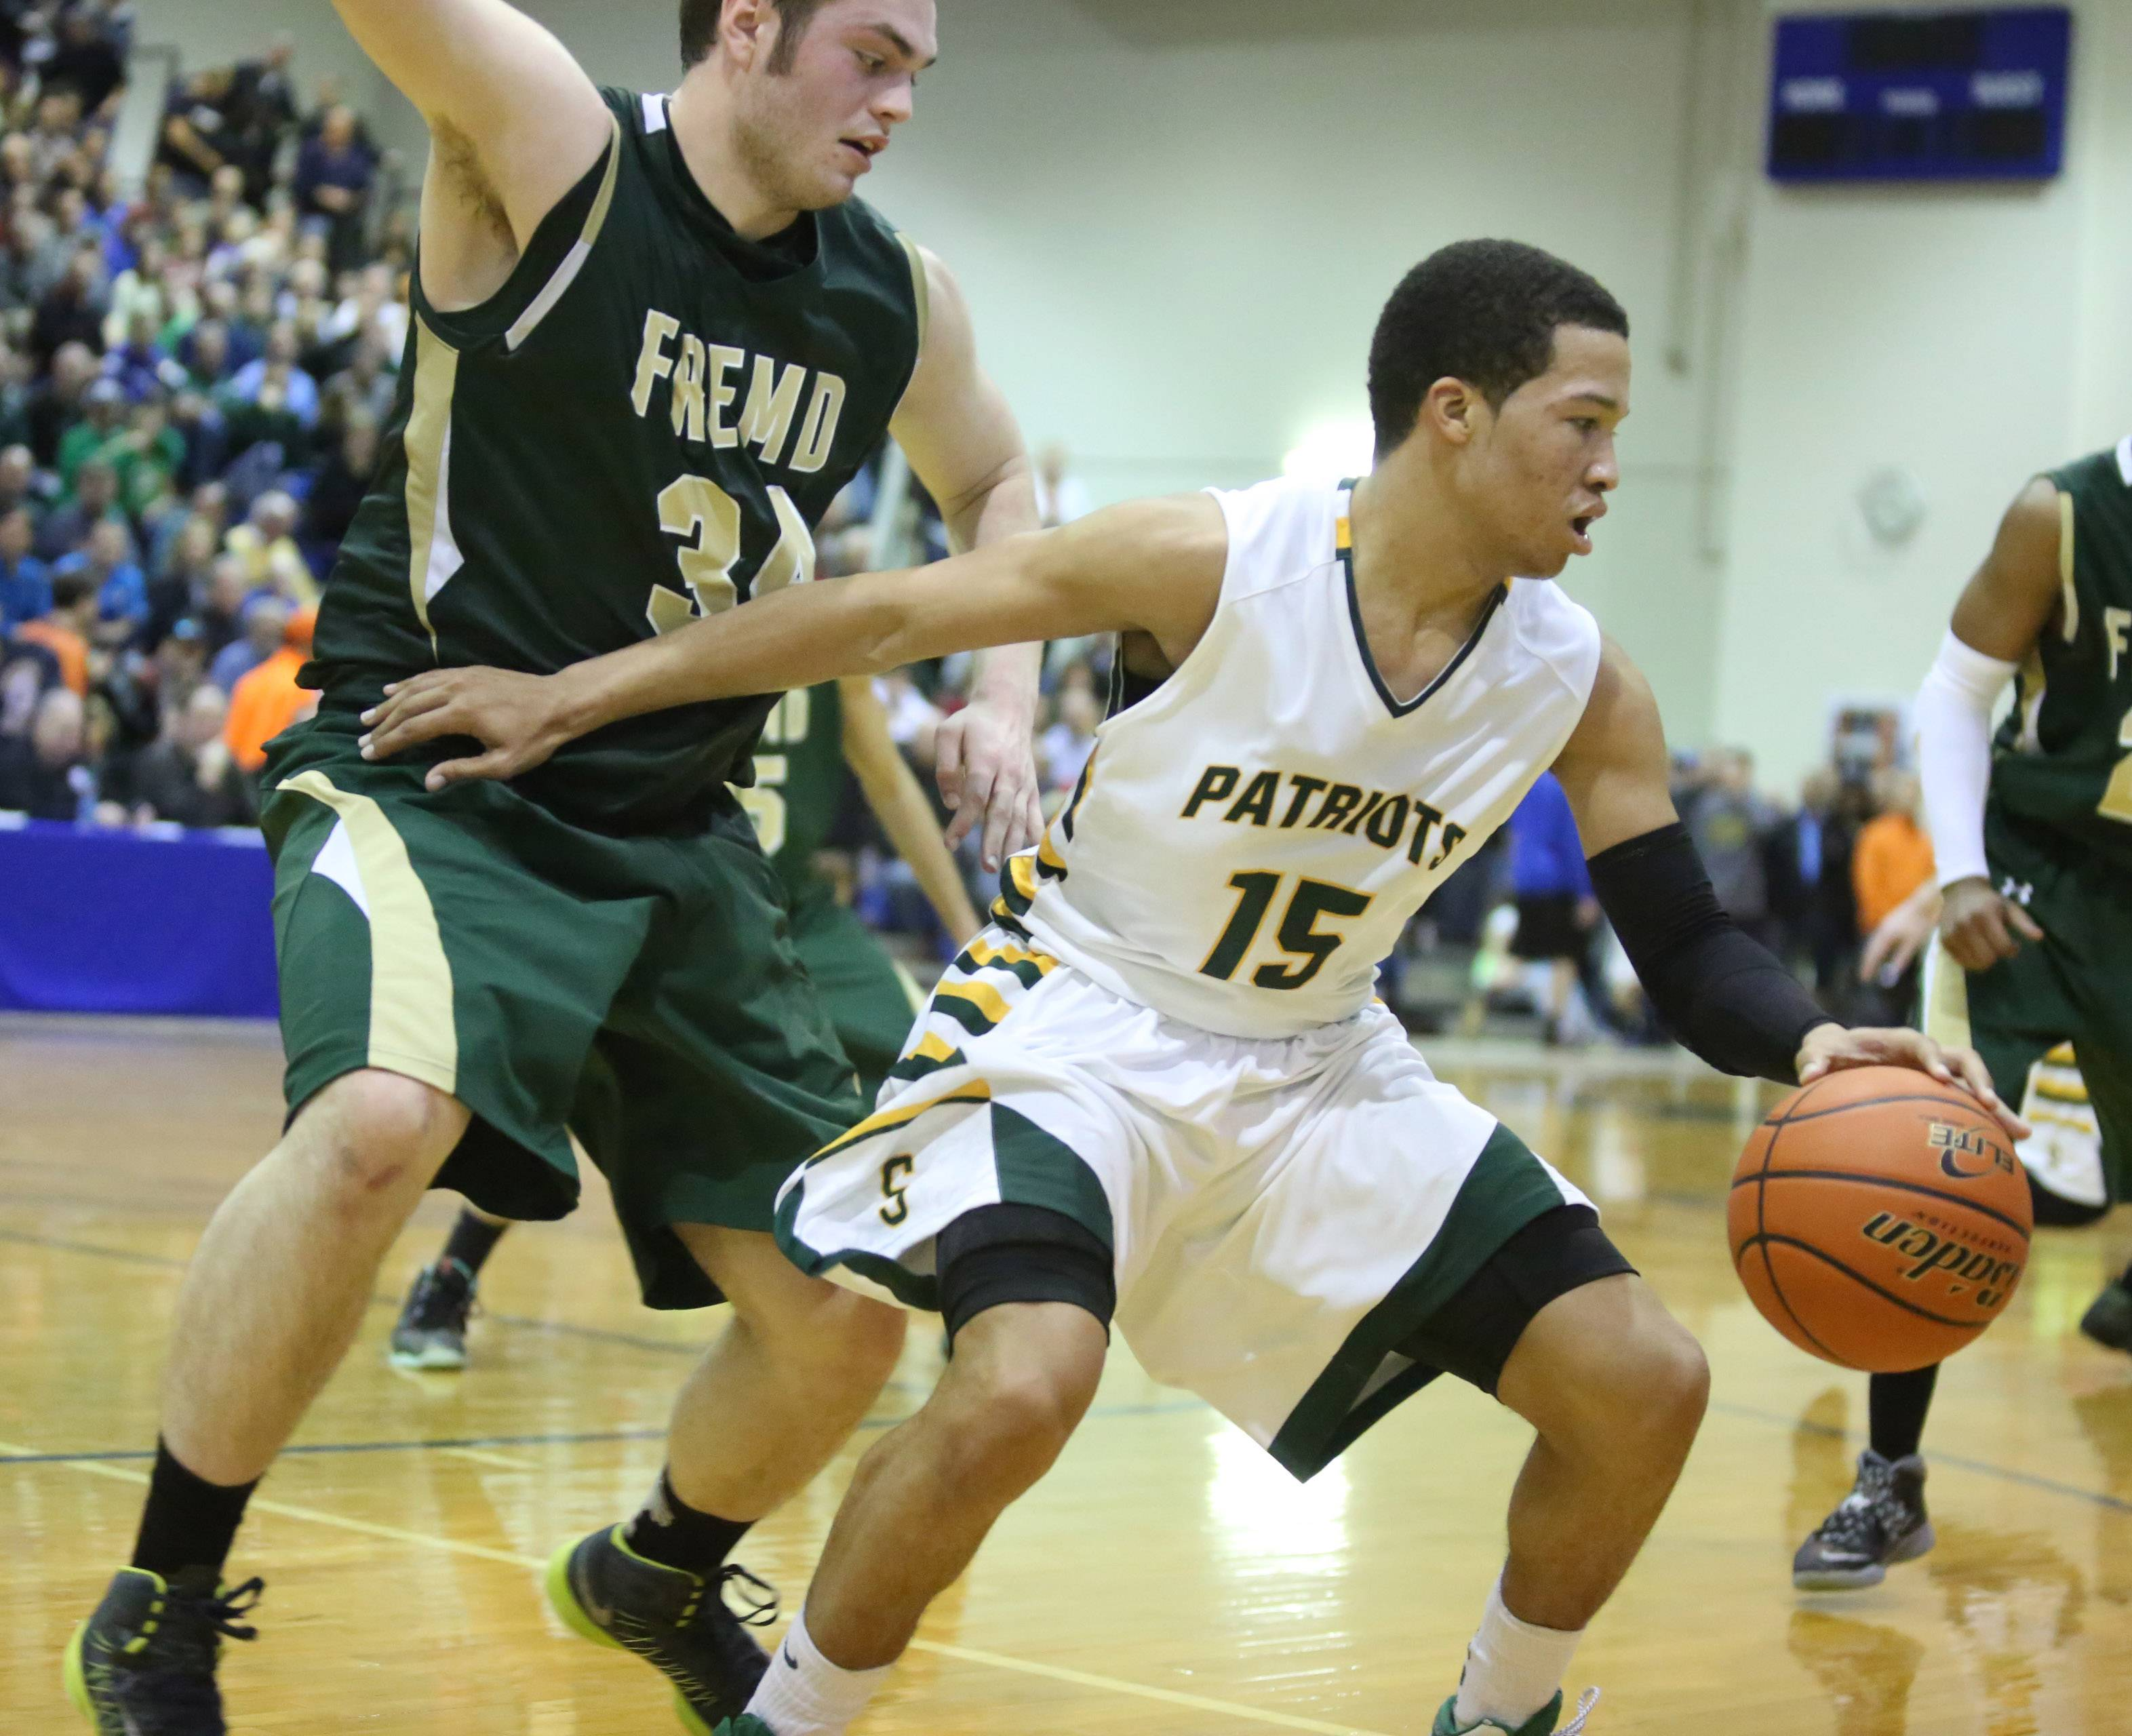 Images from the Stevenson vs. Fremd boys basketball game on Friday, March 14 in Lake Zurich.